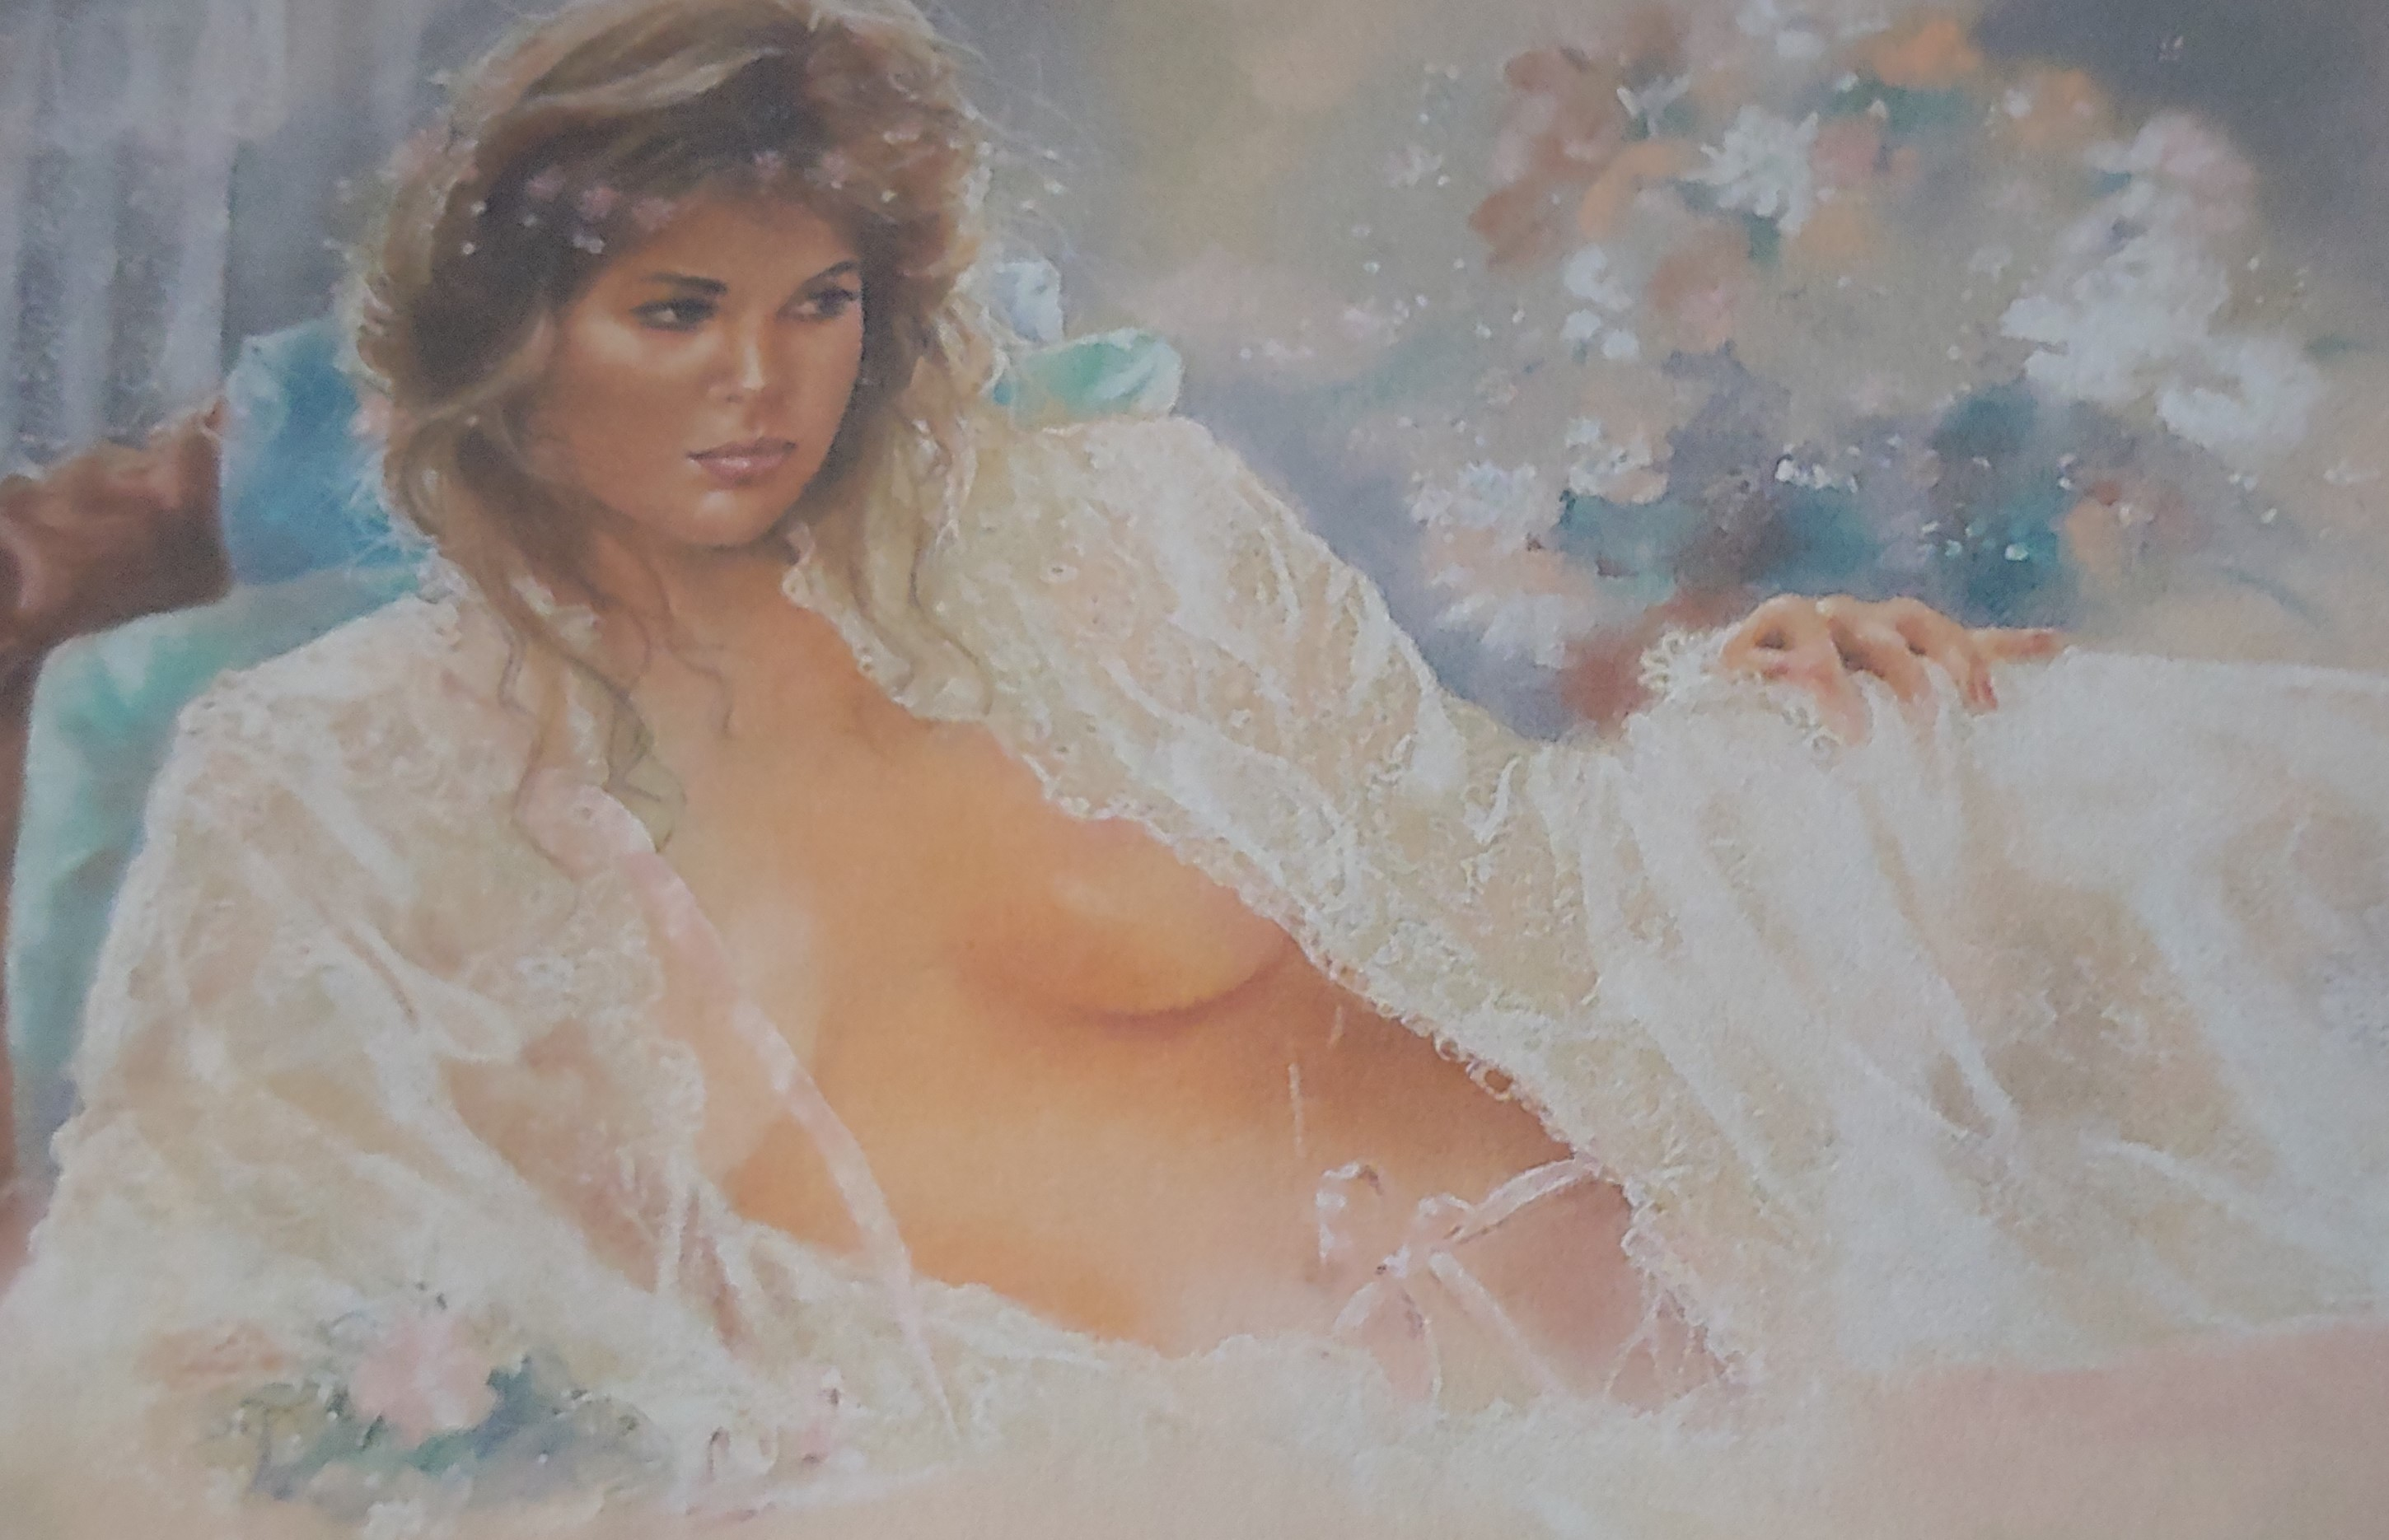 Woman in repose artwork by  Maija - art listed for sale on Artplode